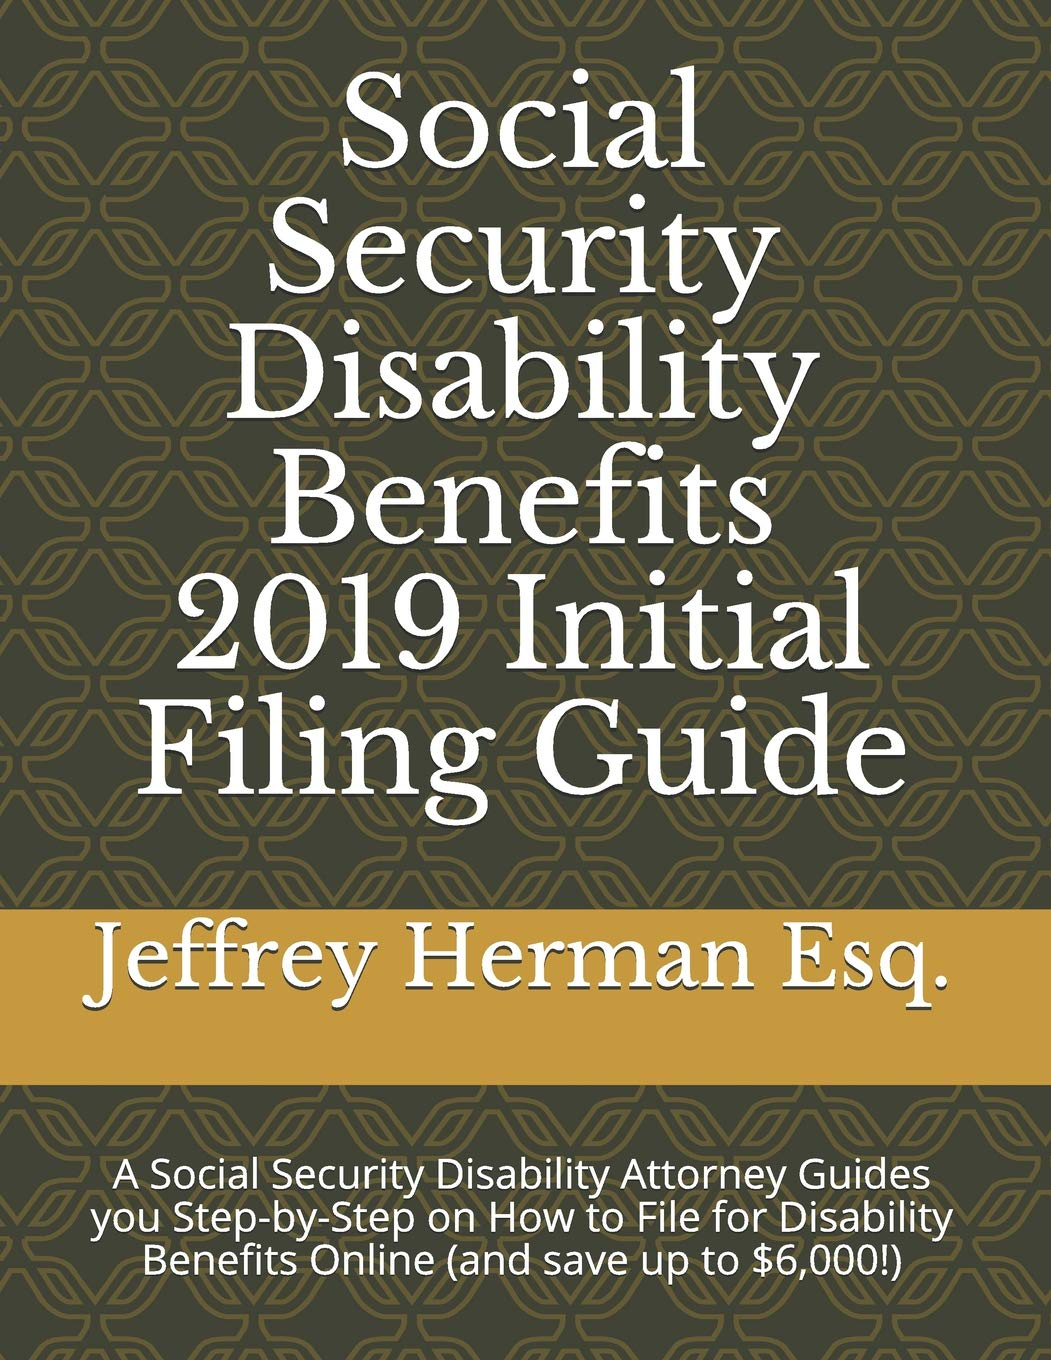 Social Security Disability Benefits 2019 Initial Filing Guide: A